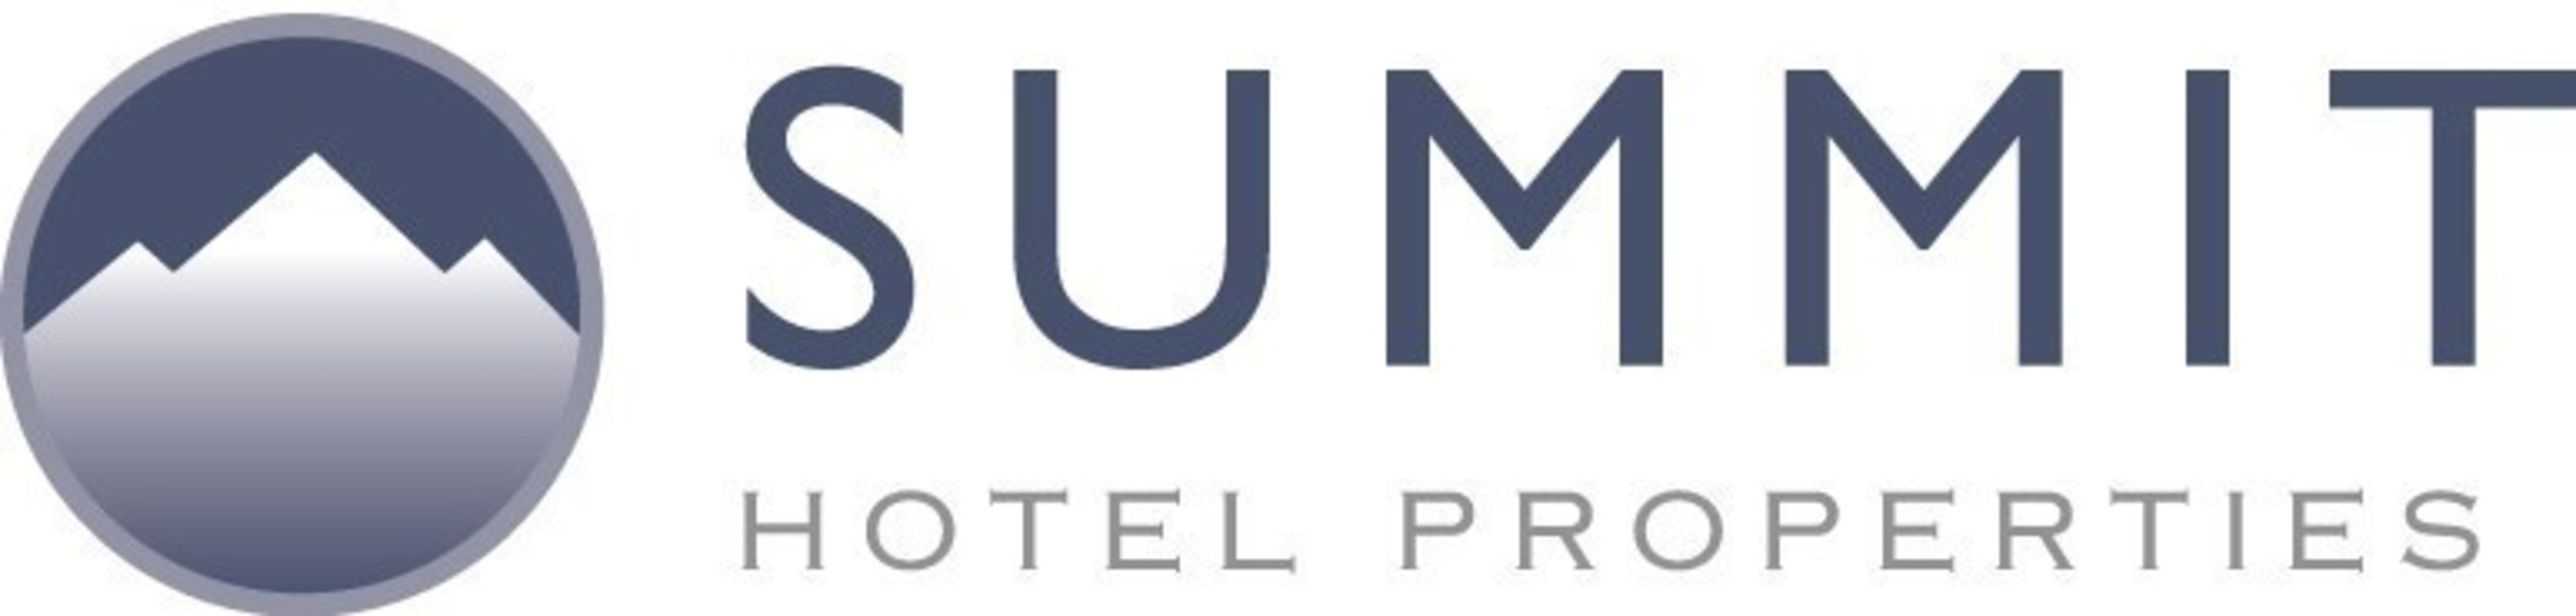 Summit Hotel Properties, Inc. Logo